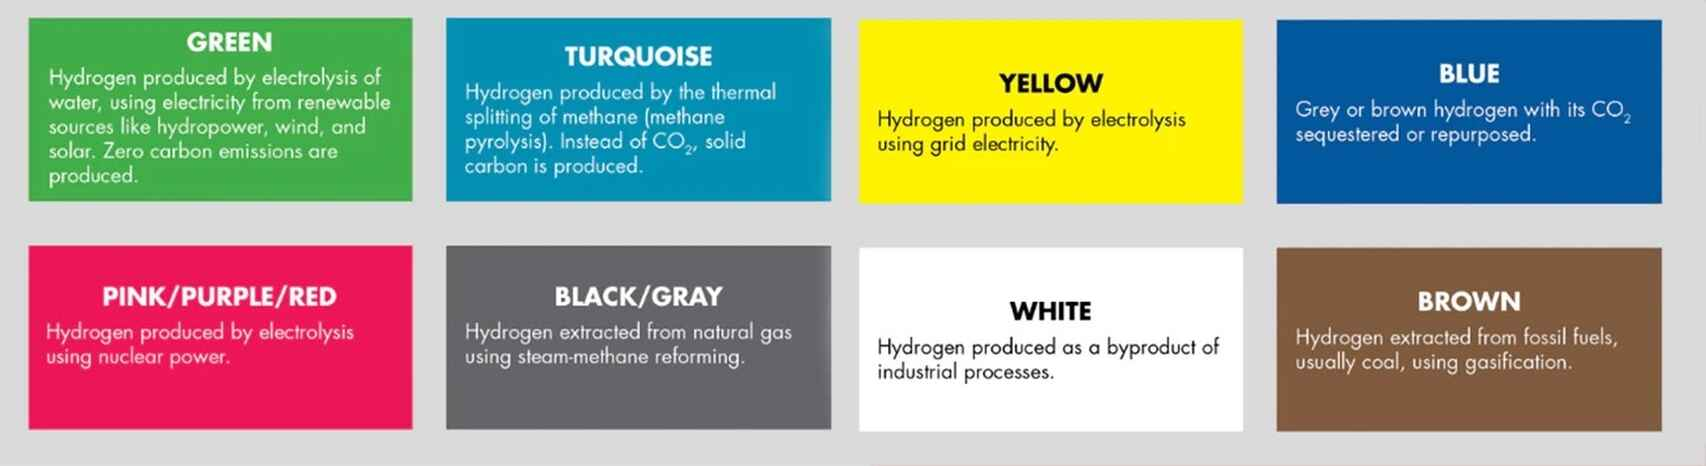 NACFE has (unofficially) assigned a color designation to each source of hydrogen. Fuente: NACFE